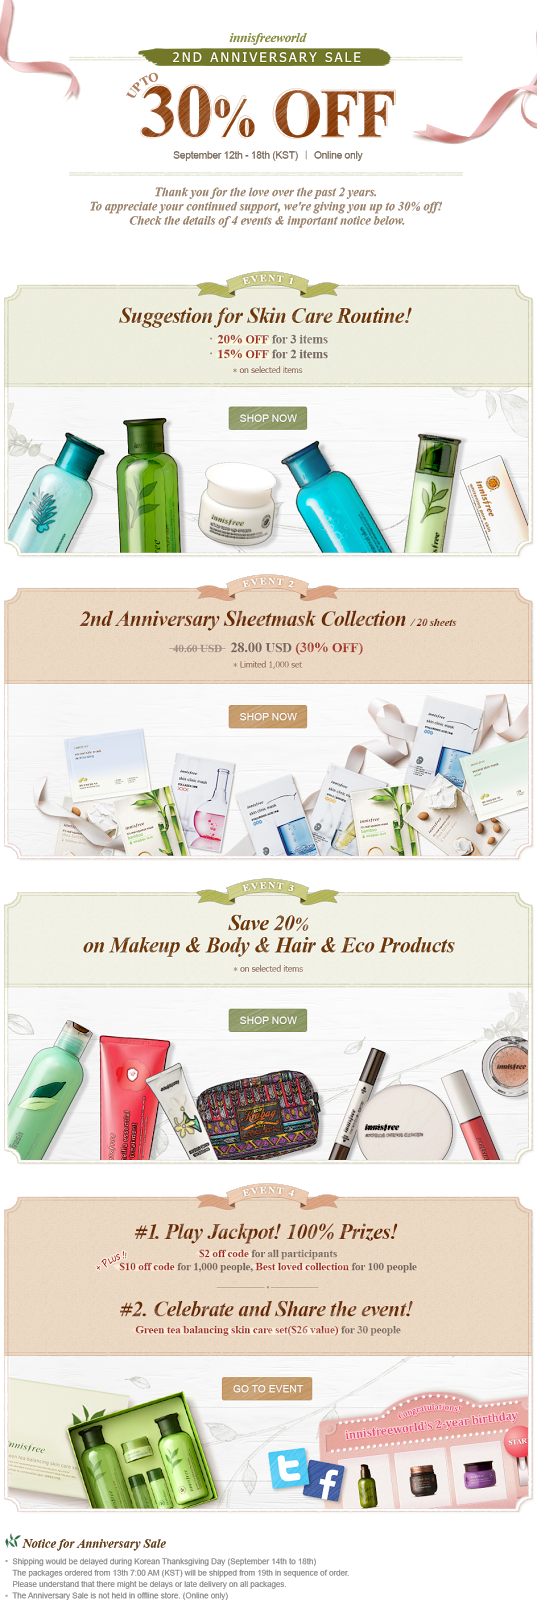 Innisfree Second Anniversary